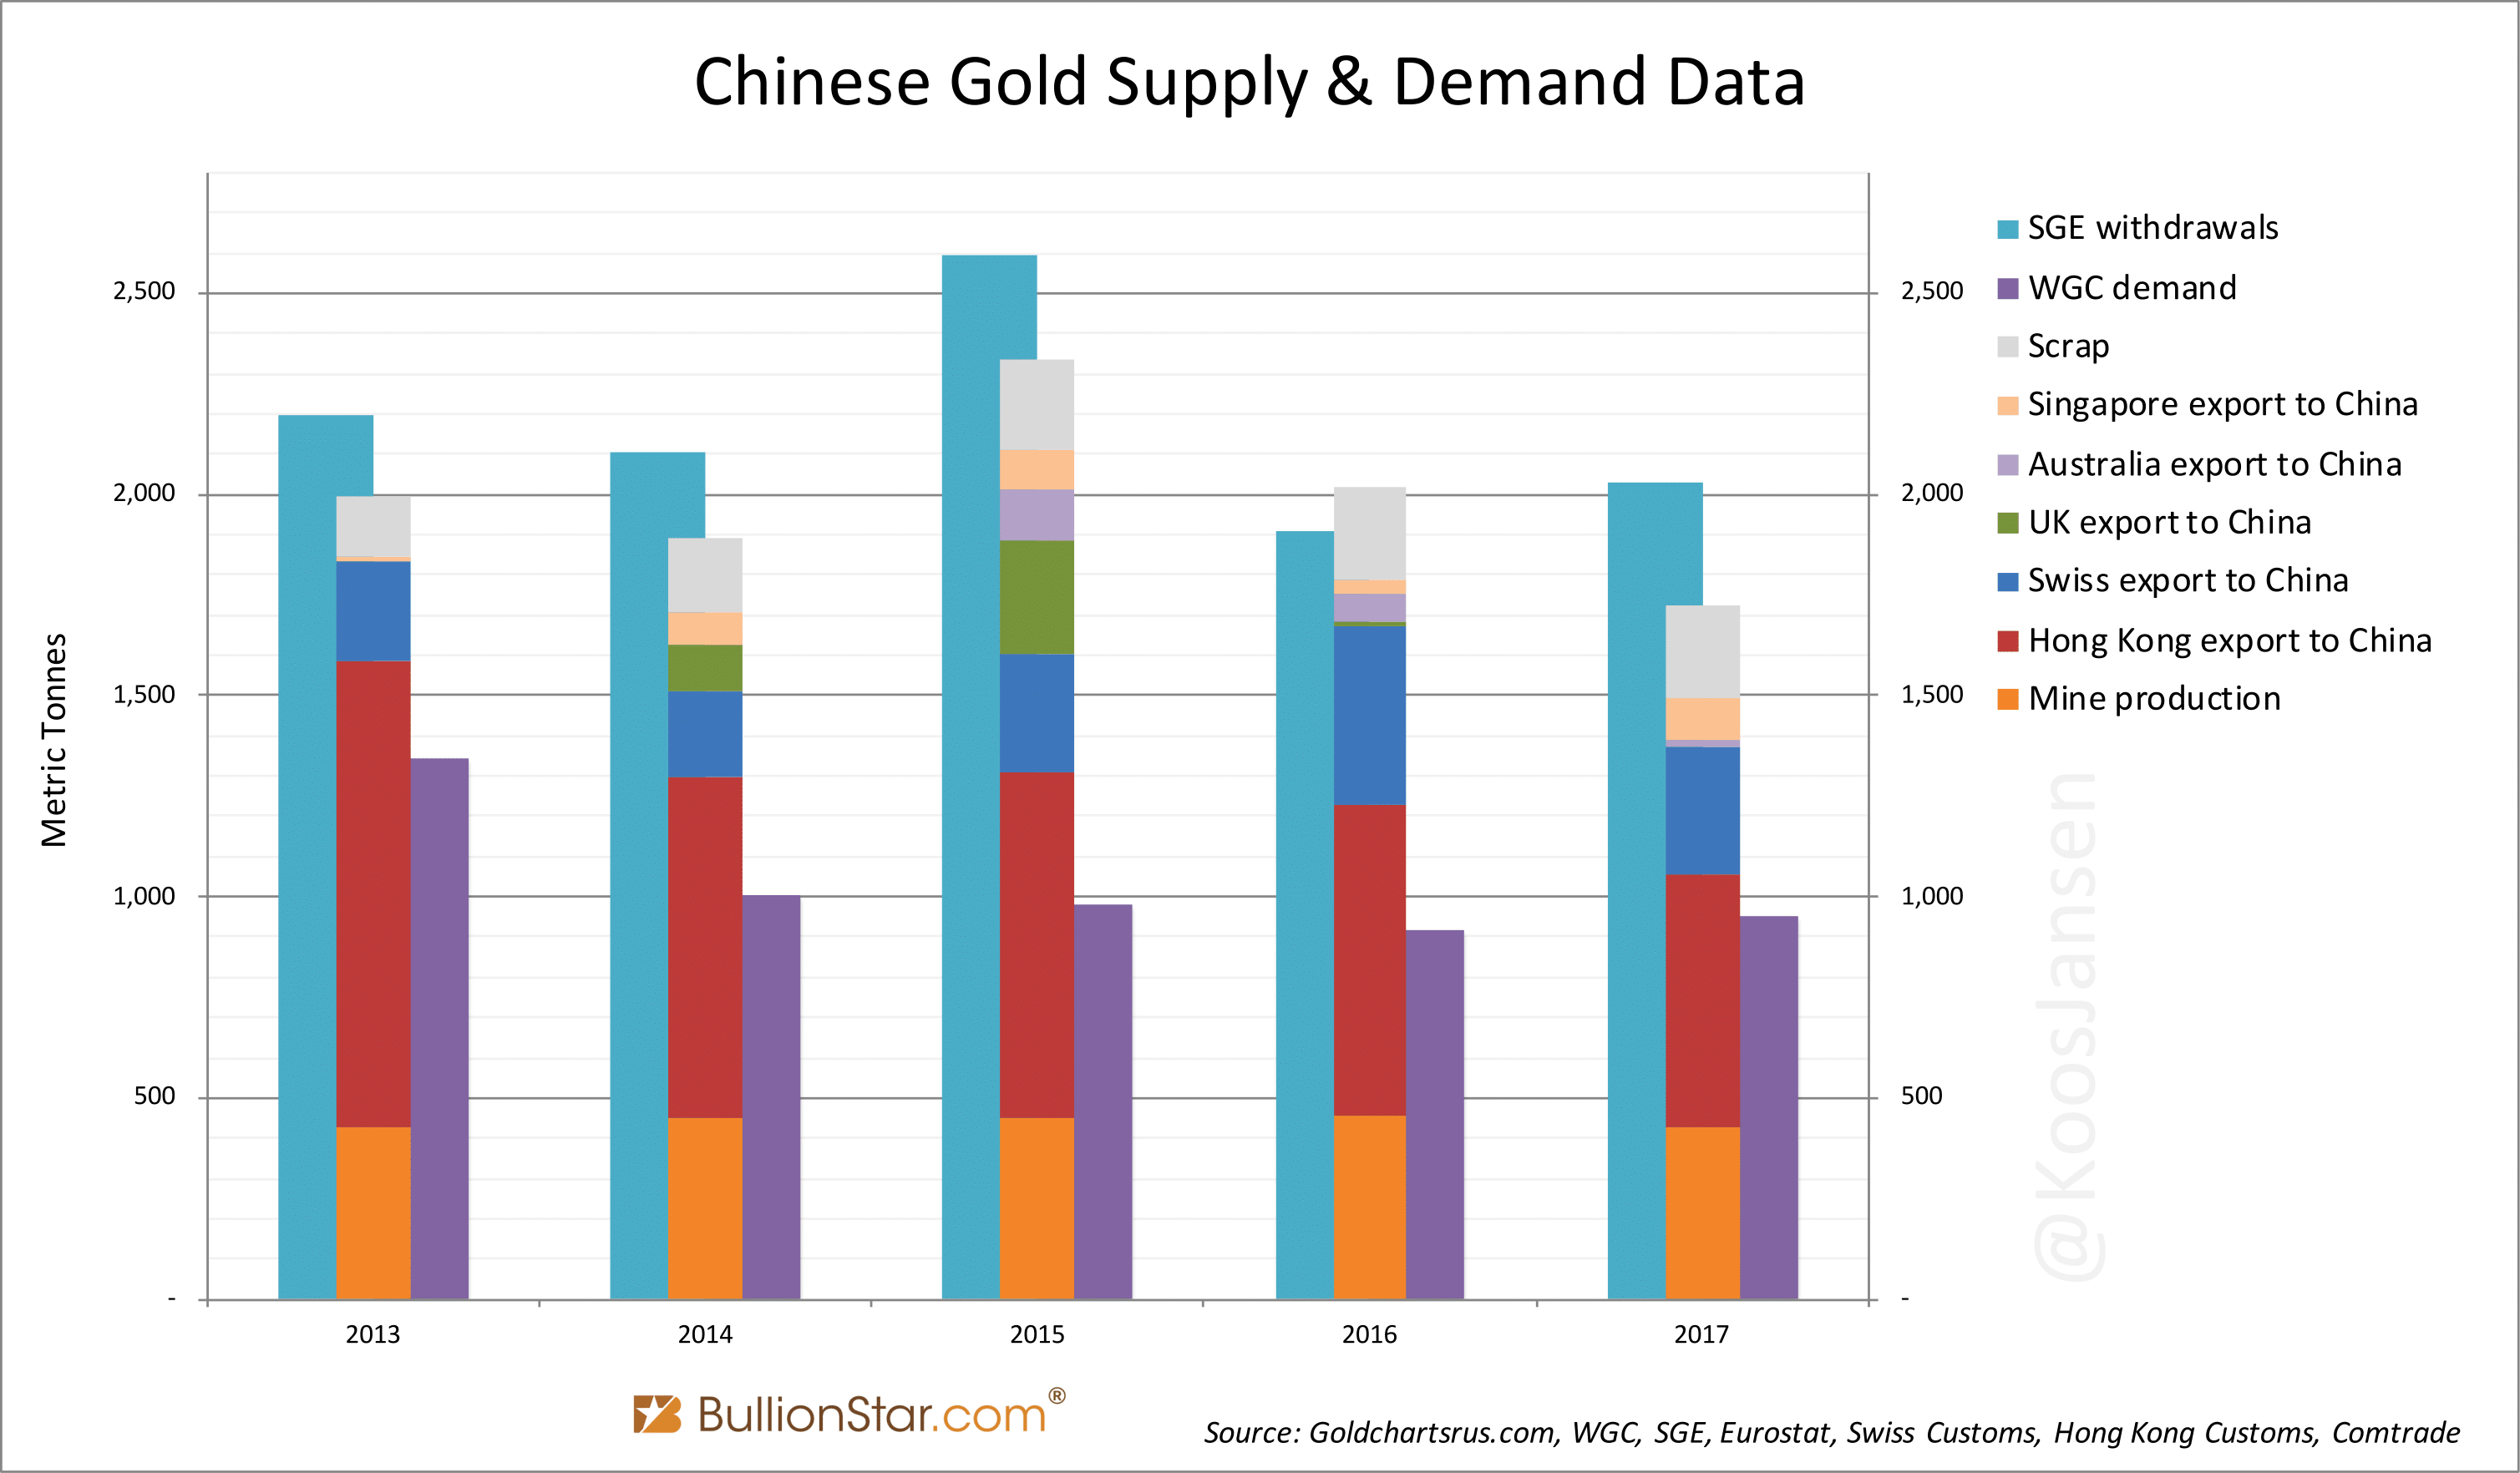 Chinese Gold Supply and Demand Data, 2013 - 2017